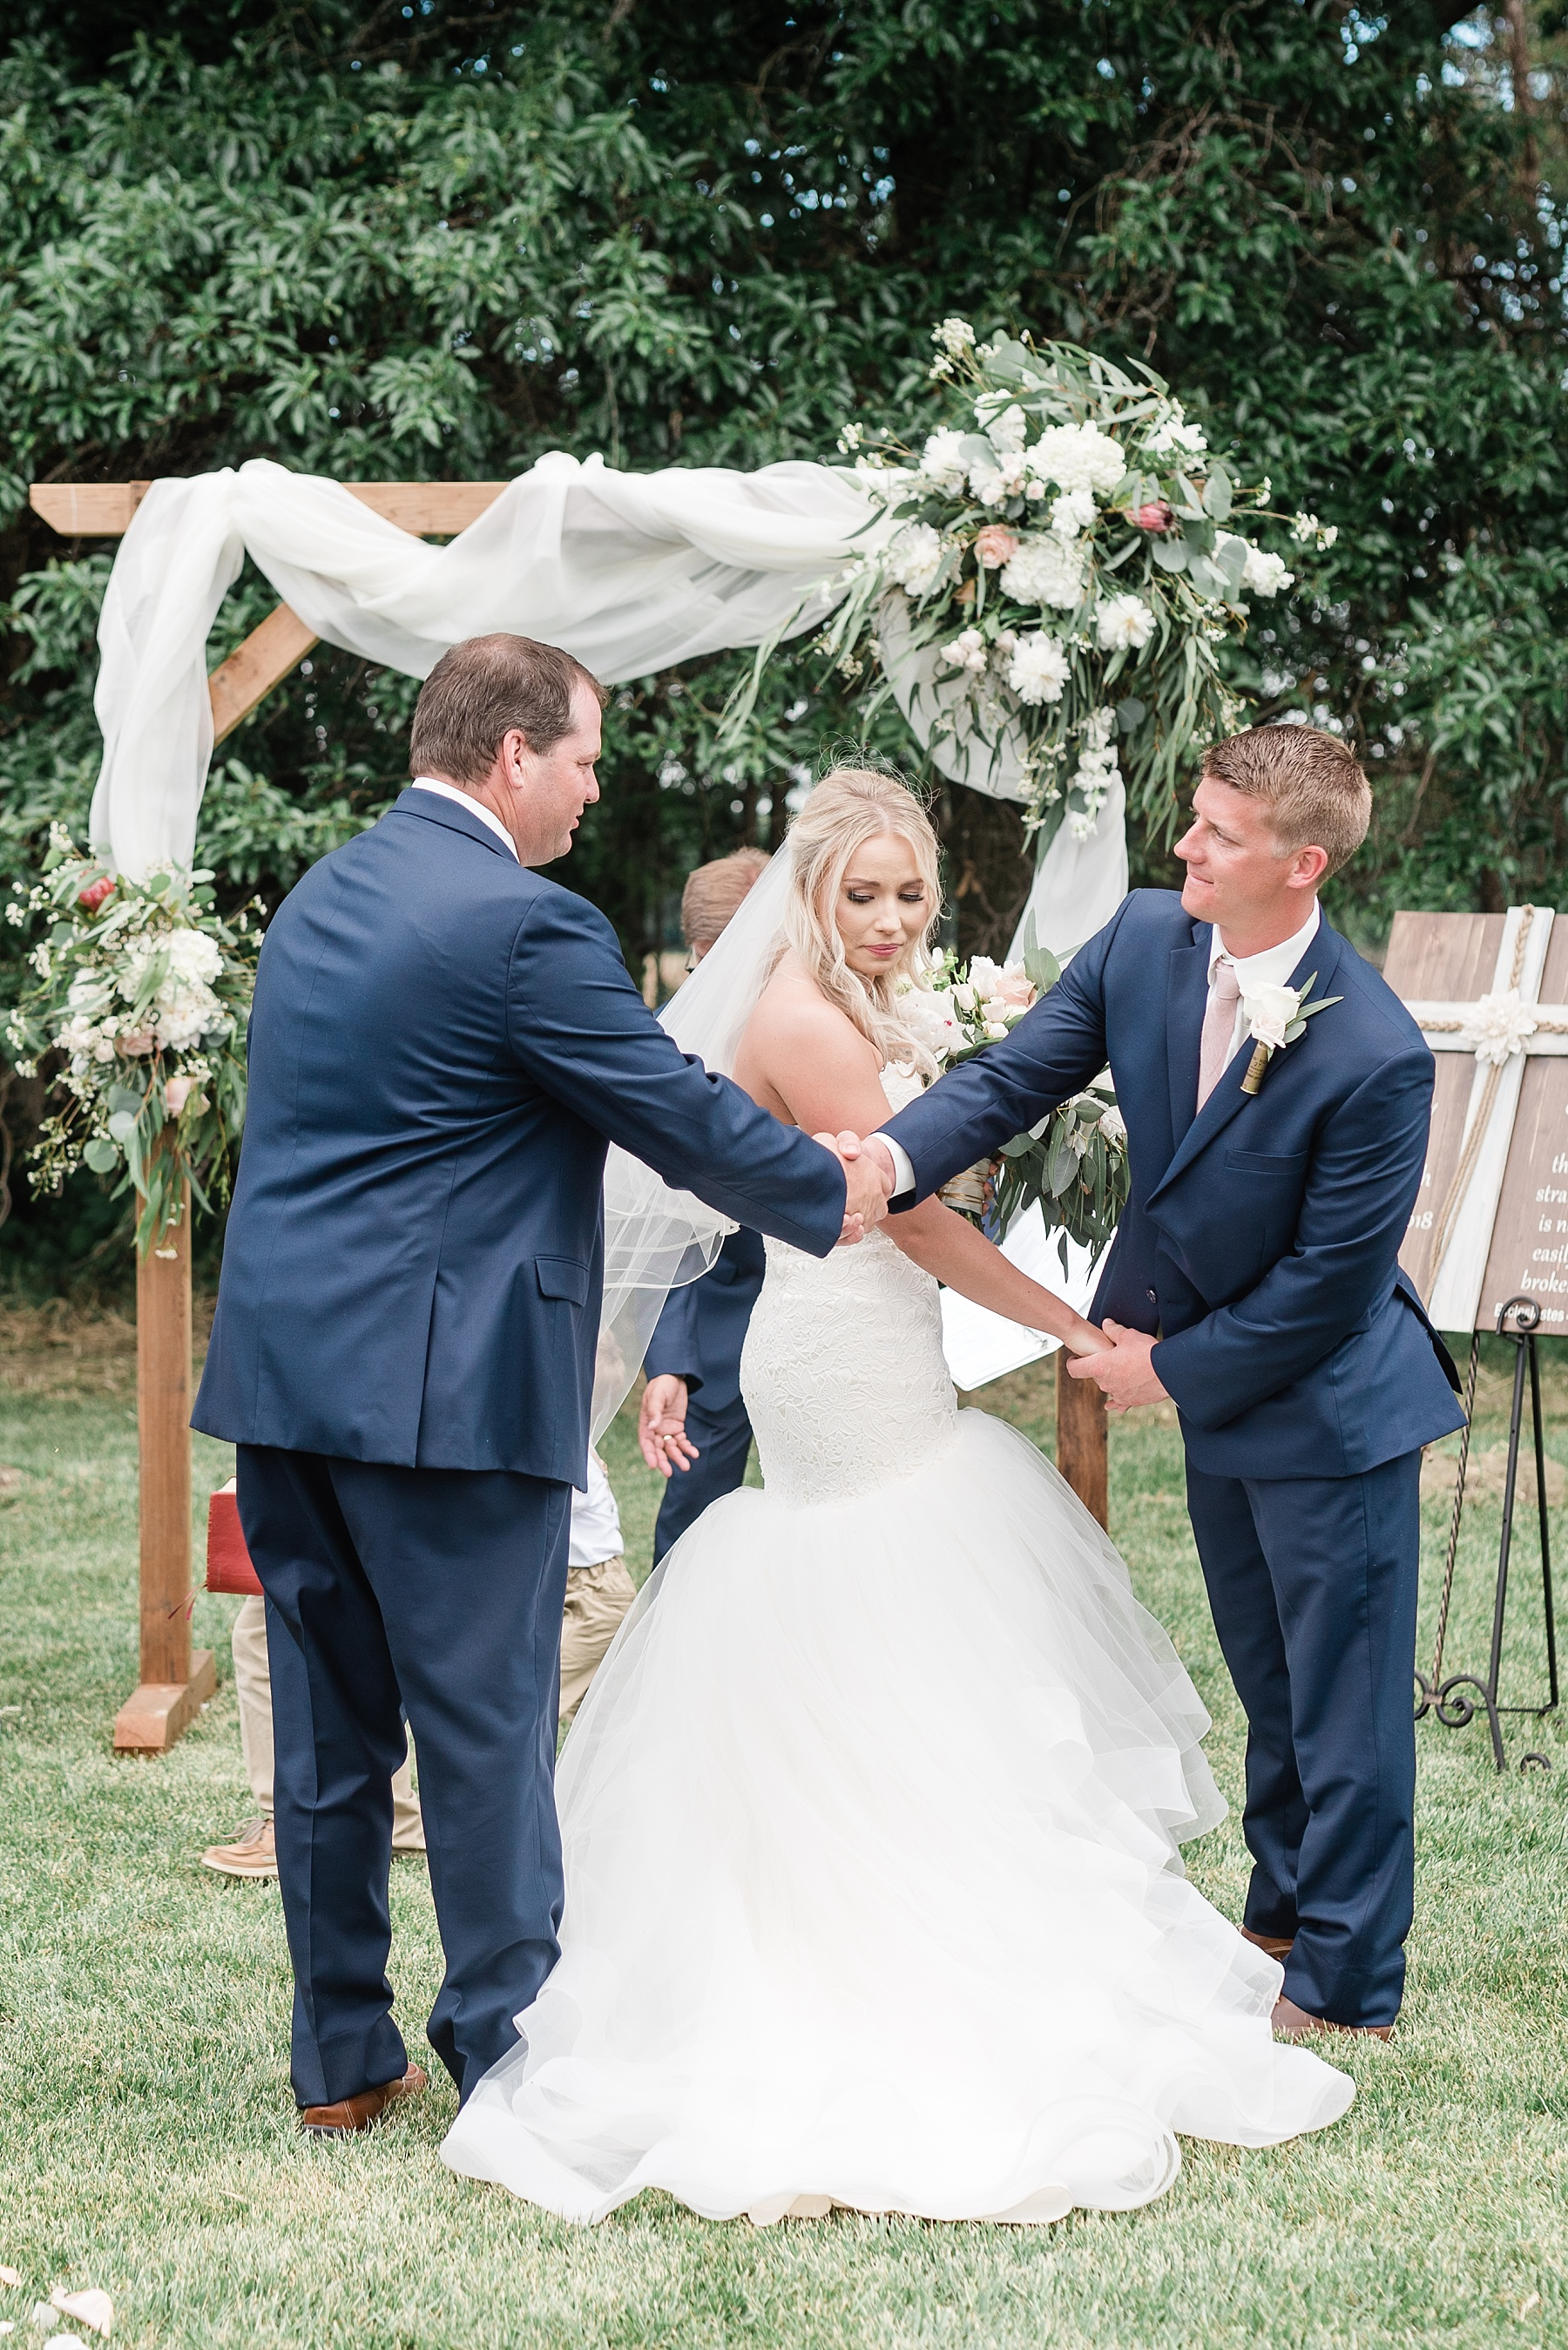 Stunning Heartfelt, Elegant, Fine Art, Chic, Outdoor Spring Wedding with Blush, Cream, Greenery, Rose Gold, and Sequins at Emerson Fields Venue by Kelsi Kliethermes Photography_0049.jpg